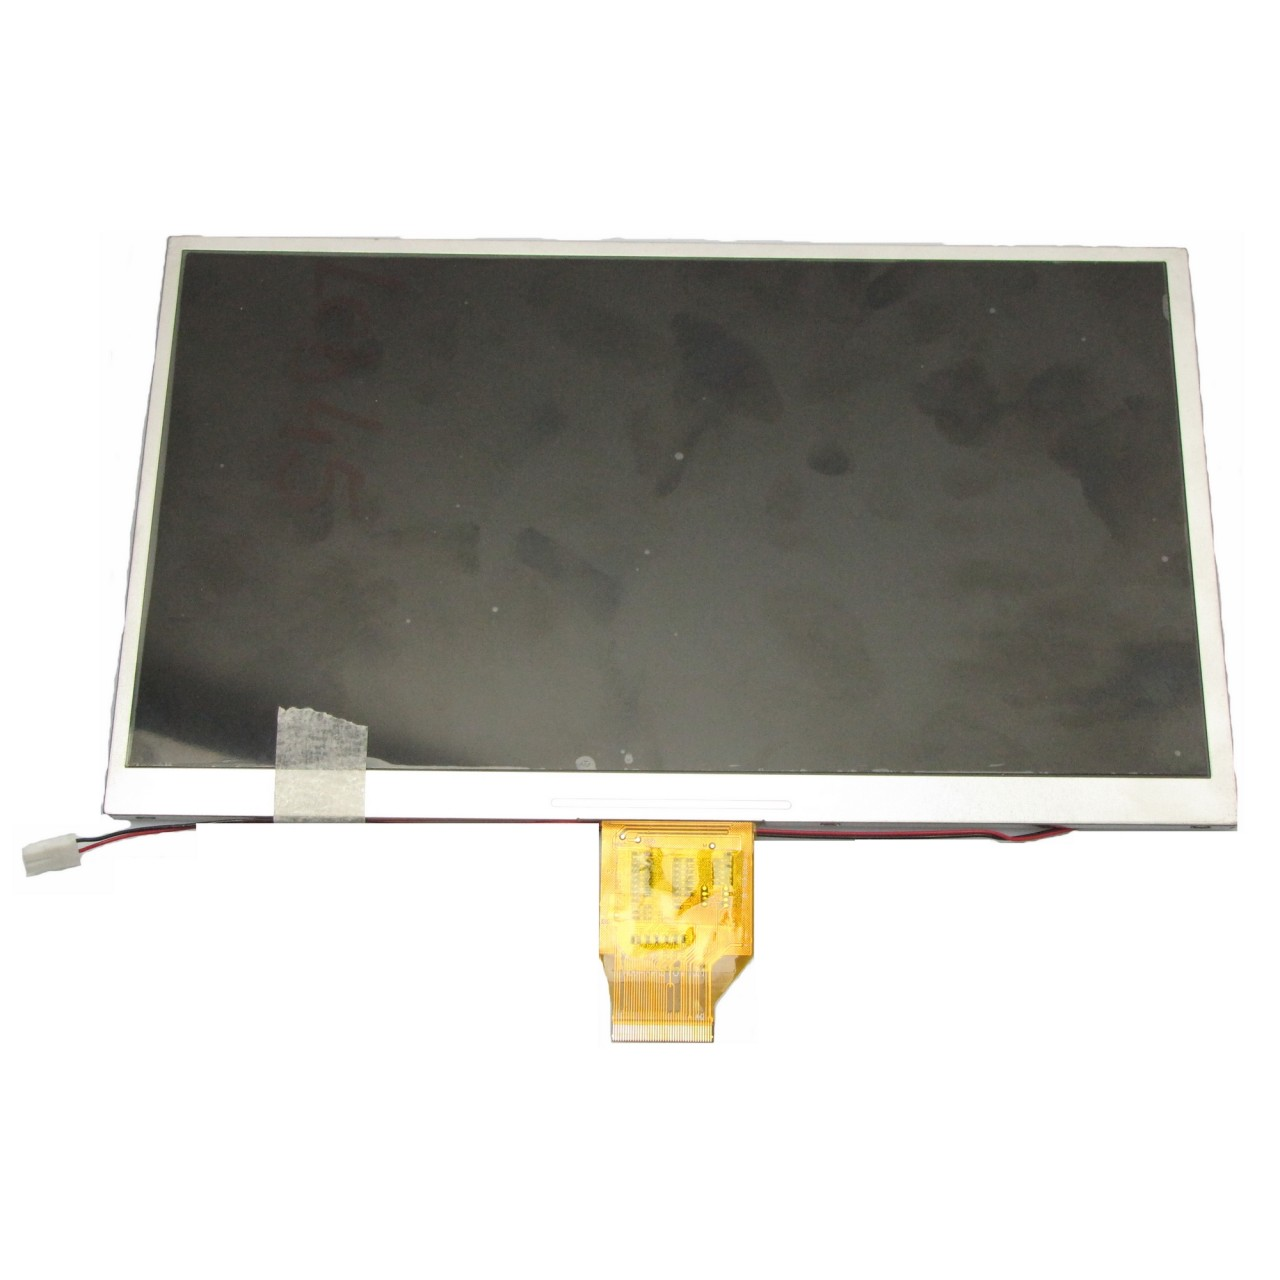 Display Utok 1000Q Ecran TN LCD Tableta ORIGINAL imagine powerlaptop.ro 2021